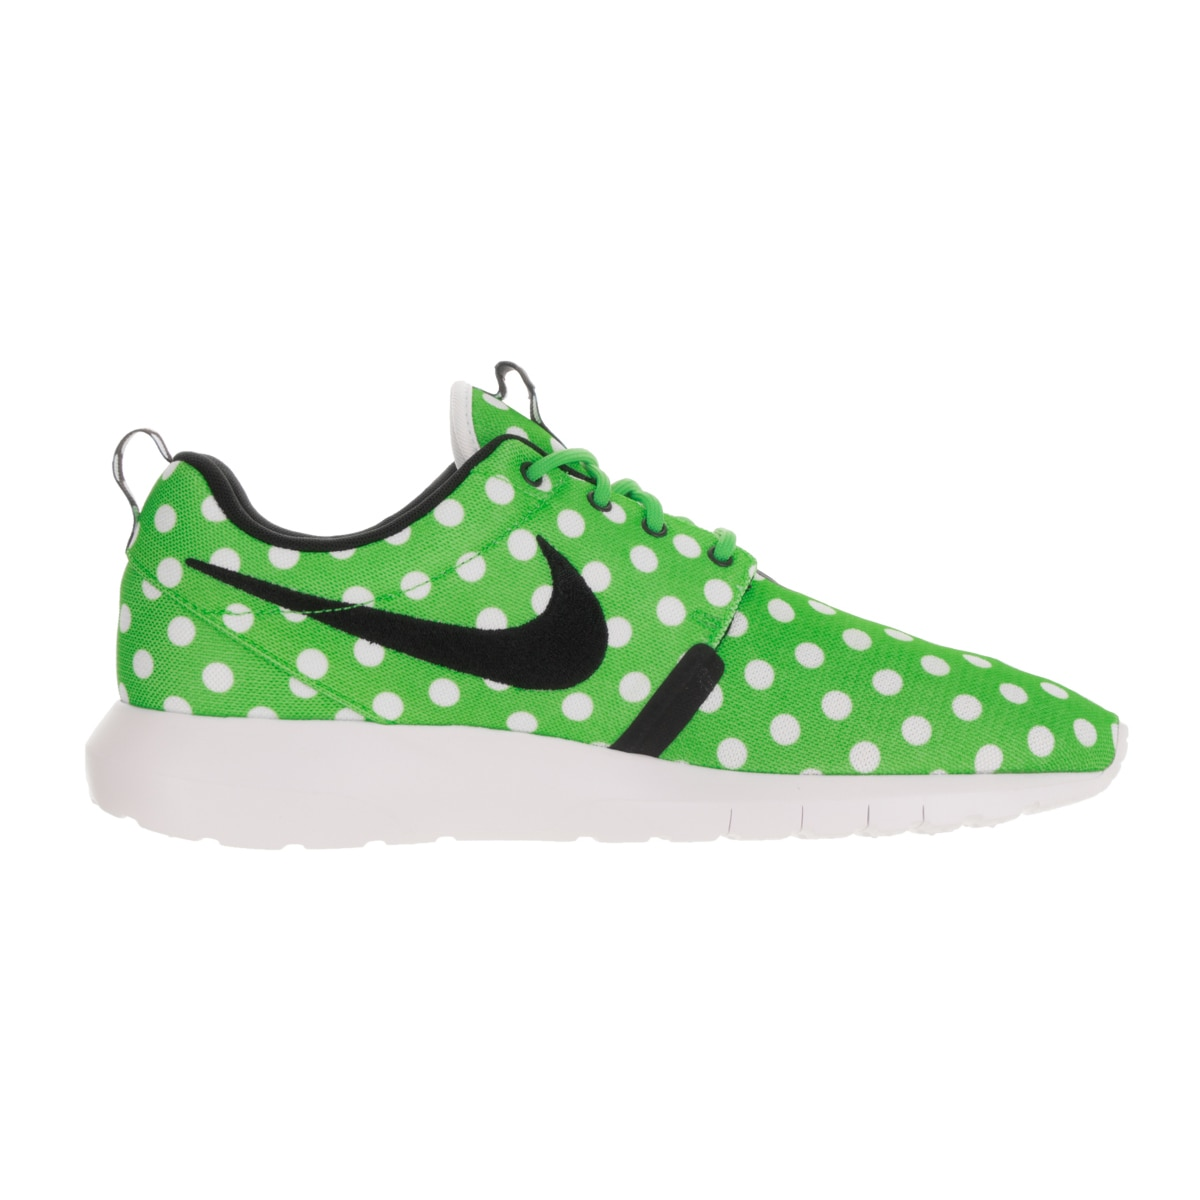 reputable site fc215 bb632 Shop Nike Men's Roshe NM QS Green Strike/Black/White Running Shoe - Free  Shipping Today - Overstock - 13394789